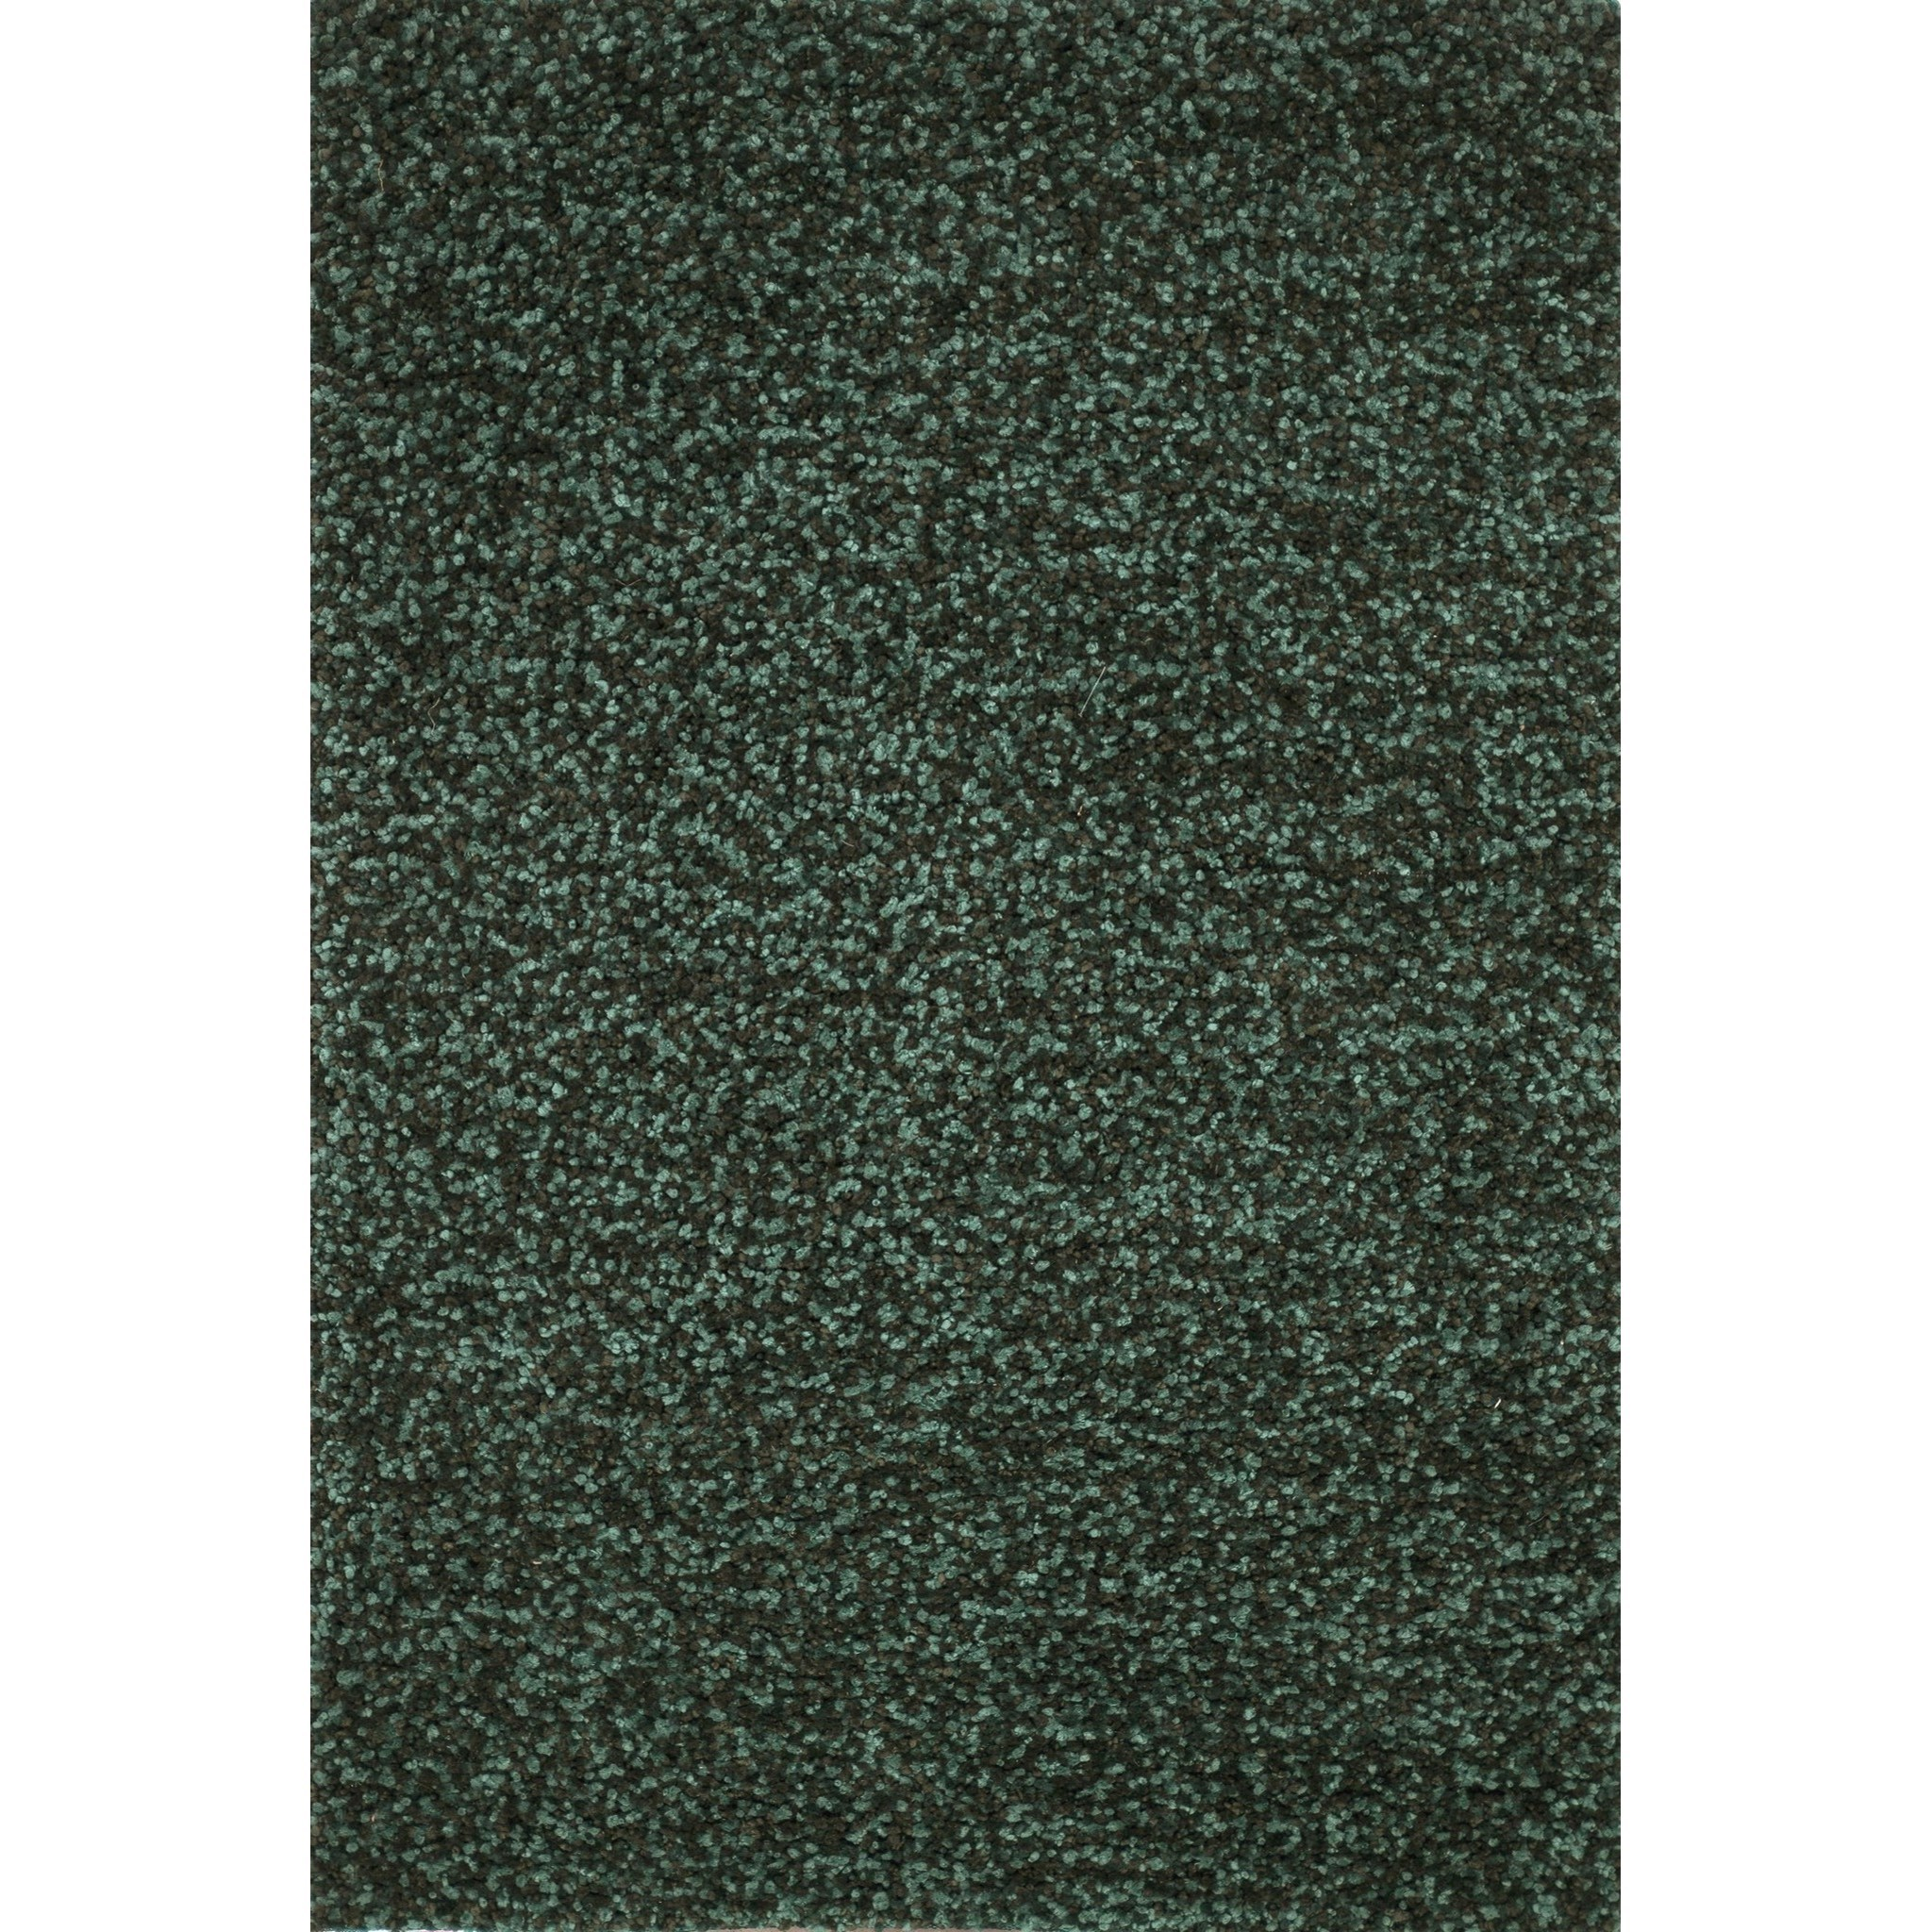 "Olin 7'-6"" x 9'-6"" Area Rug by Loloi Rugs at Sprintz Furniture"